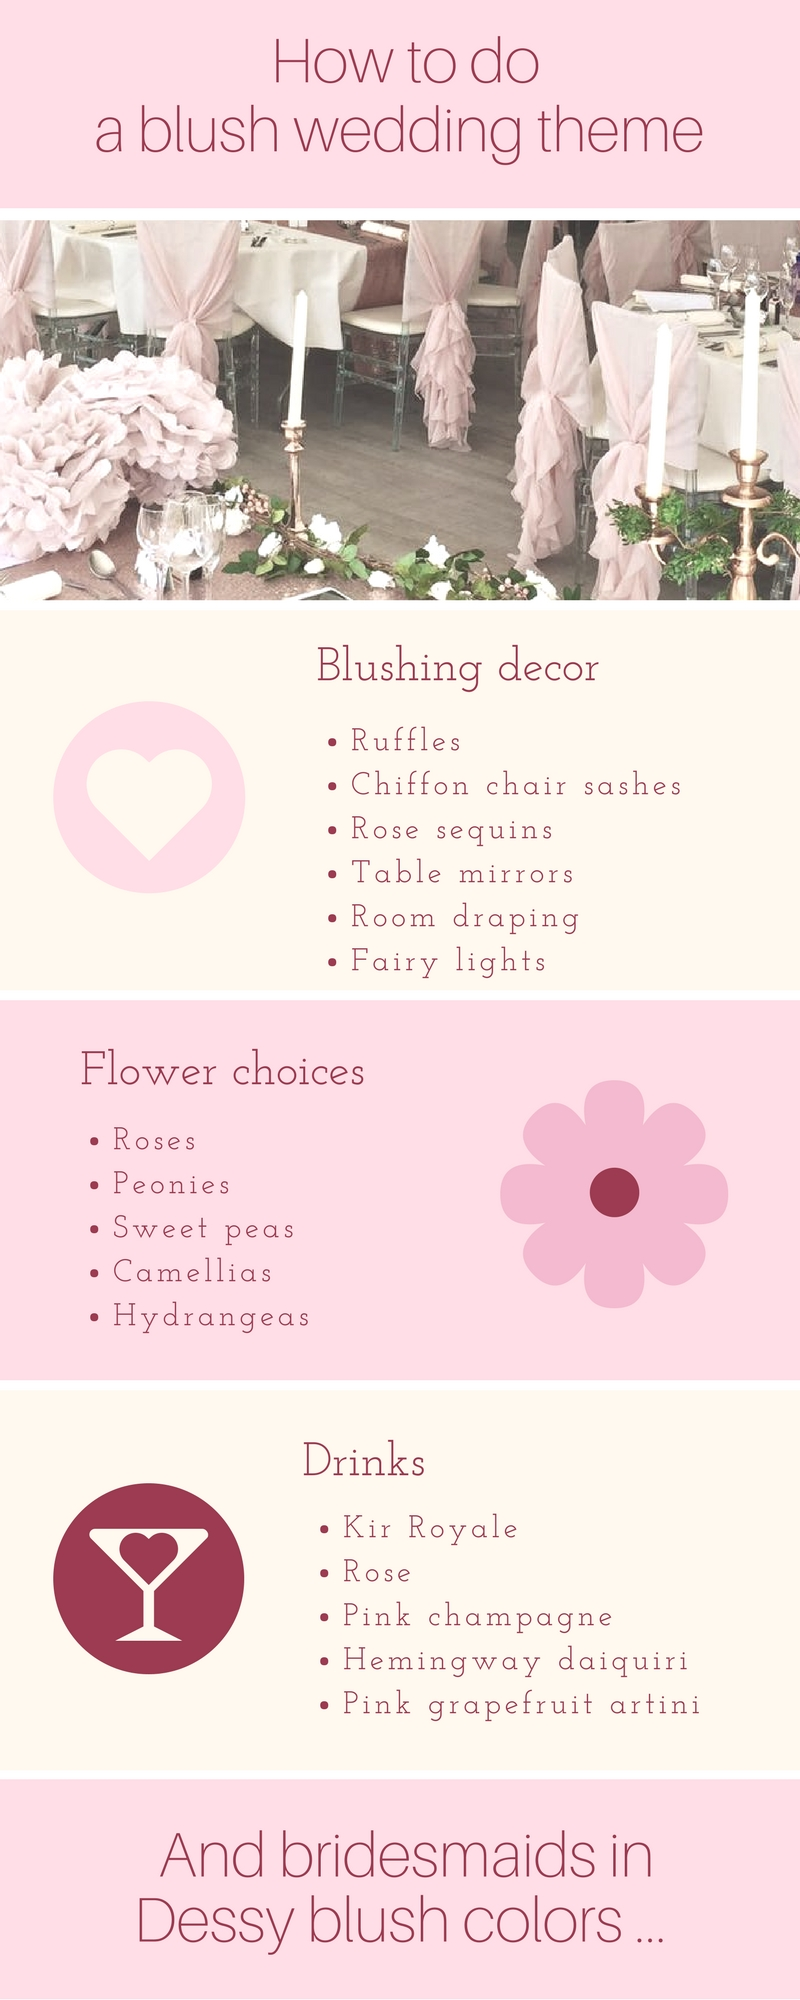 The dessy group the spot for all things bridesmaid blush for your bridesmaids ombrellifo Images